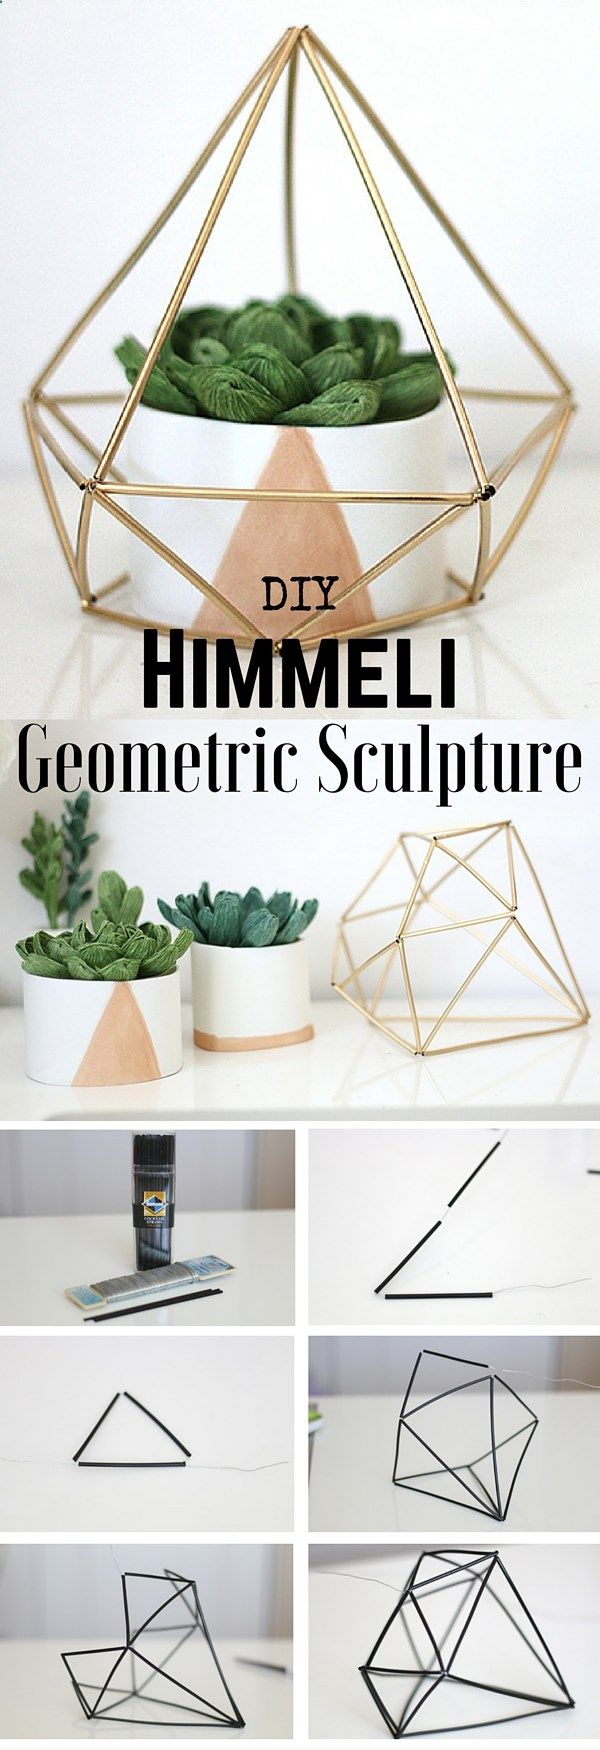 Check out the tutorial: #DIY Himmeli Geometric Sculpture Industry ...